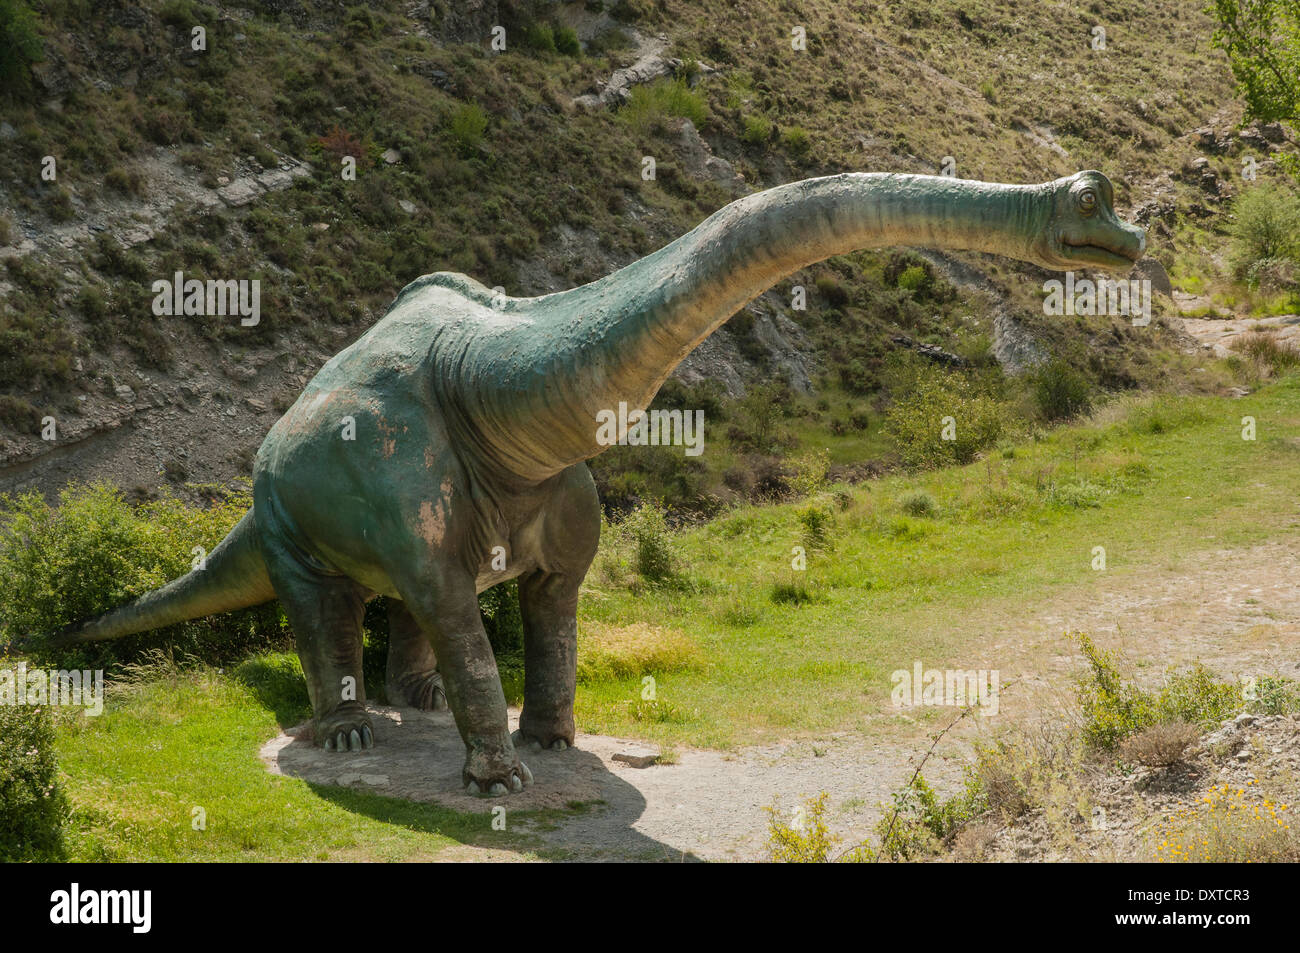 Real.size recreation model of Sauropod dinosaur made from fiberglass and concrete at the Valdecevillo palaeontological site, La Rioja, Spain. - Stock Image